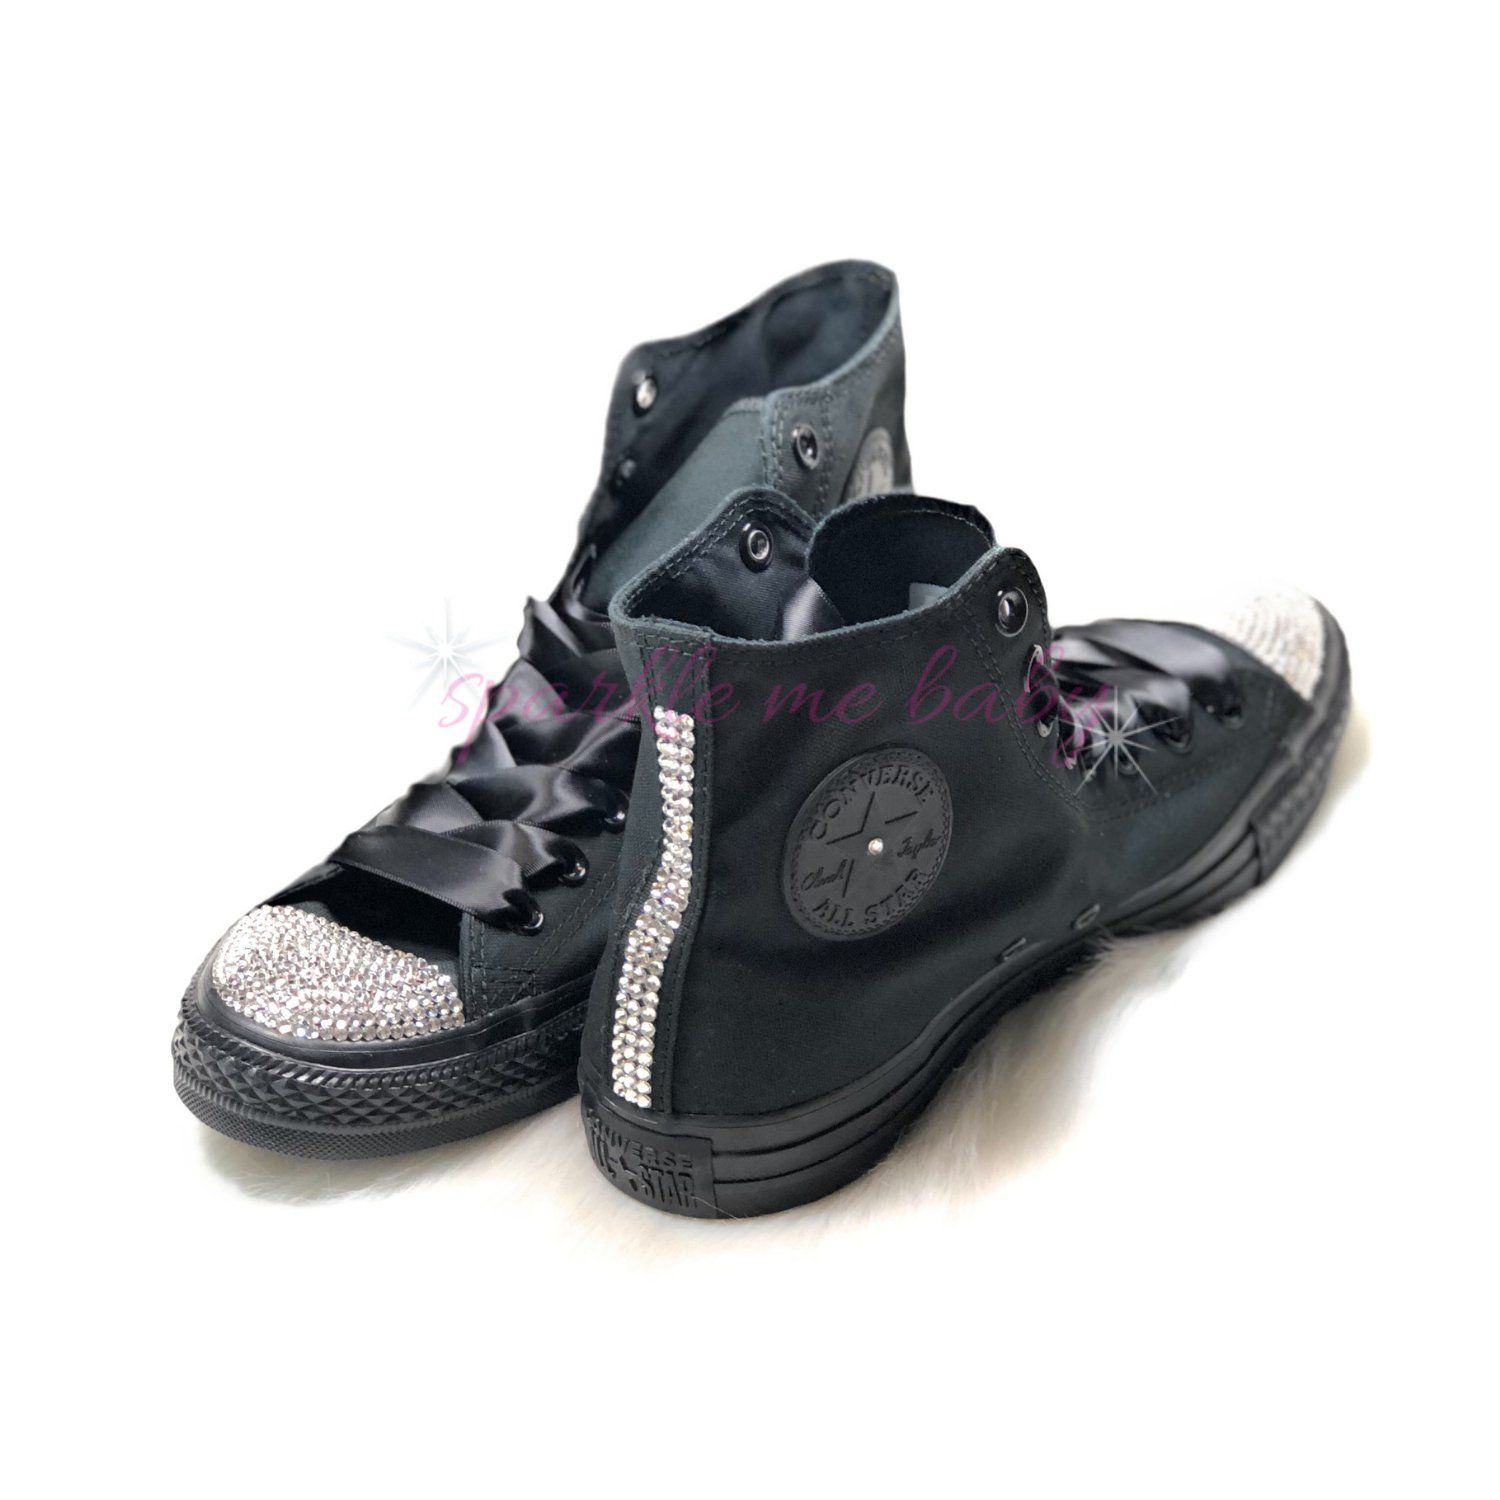 Swarovski Women s Converse High Tops ~ Black Monochrome ~ Crystal Choices  include Swarovski ~ Bling Converse Customized By SparkleMeBaby2u by ... 42156312ec46